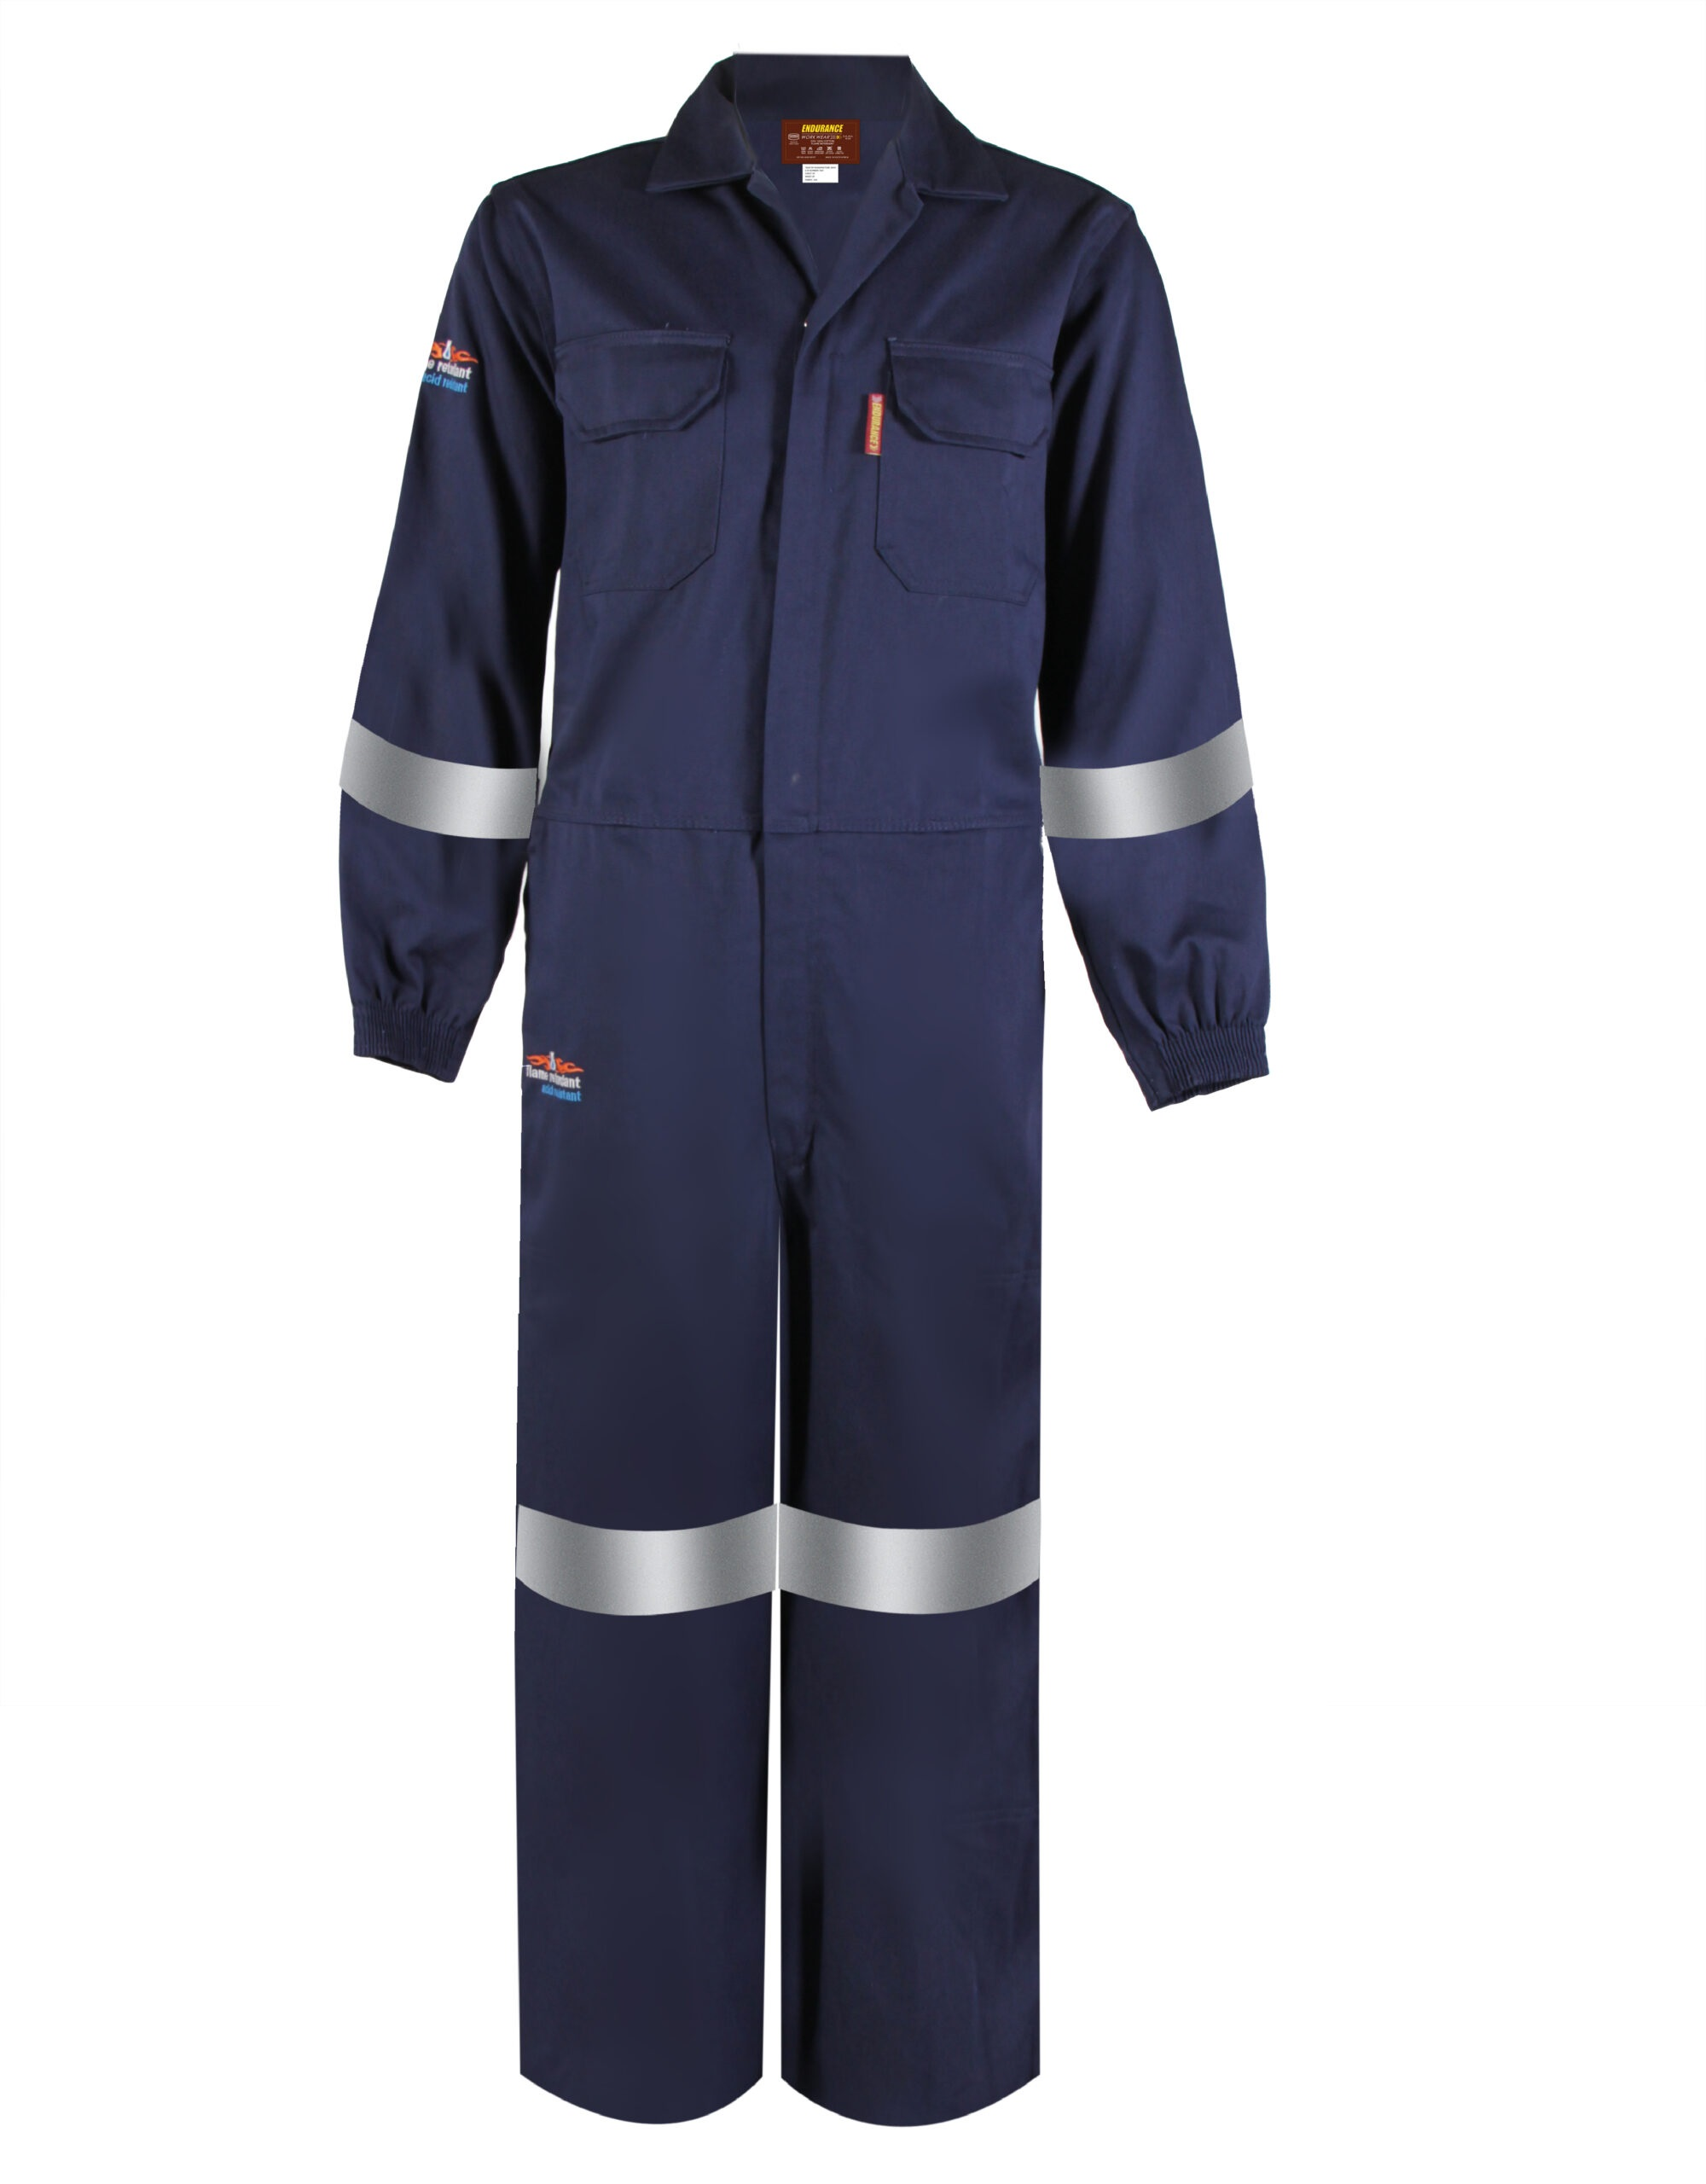 ENDURANCE Flame & Acid SABS Approved Boilersuit Size 36